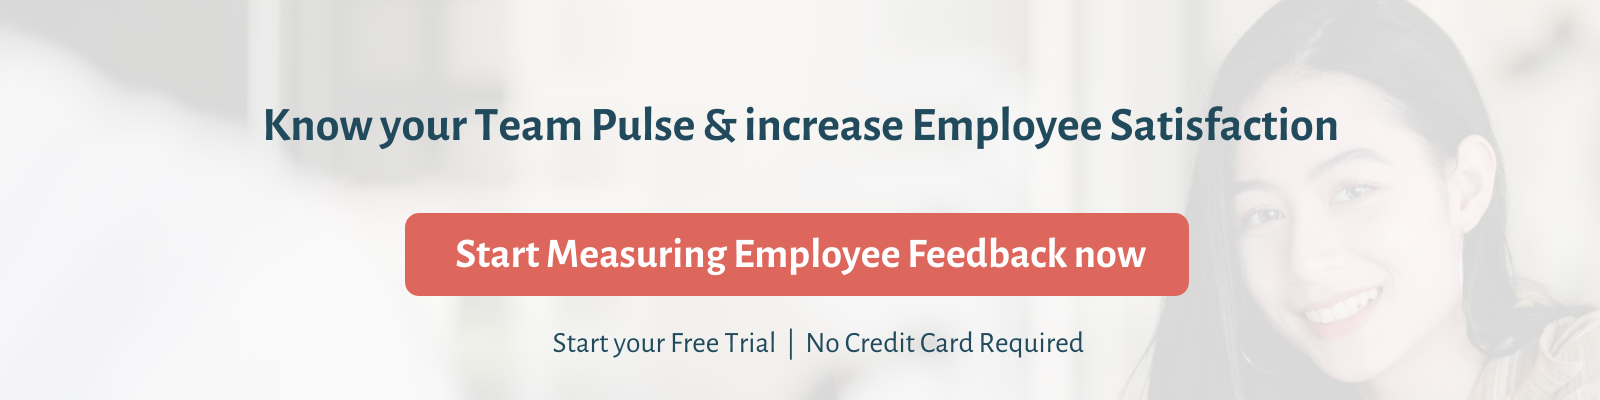 Know your Team Pulse & increase Employee Satisfaction